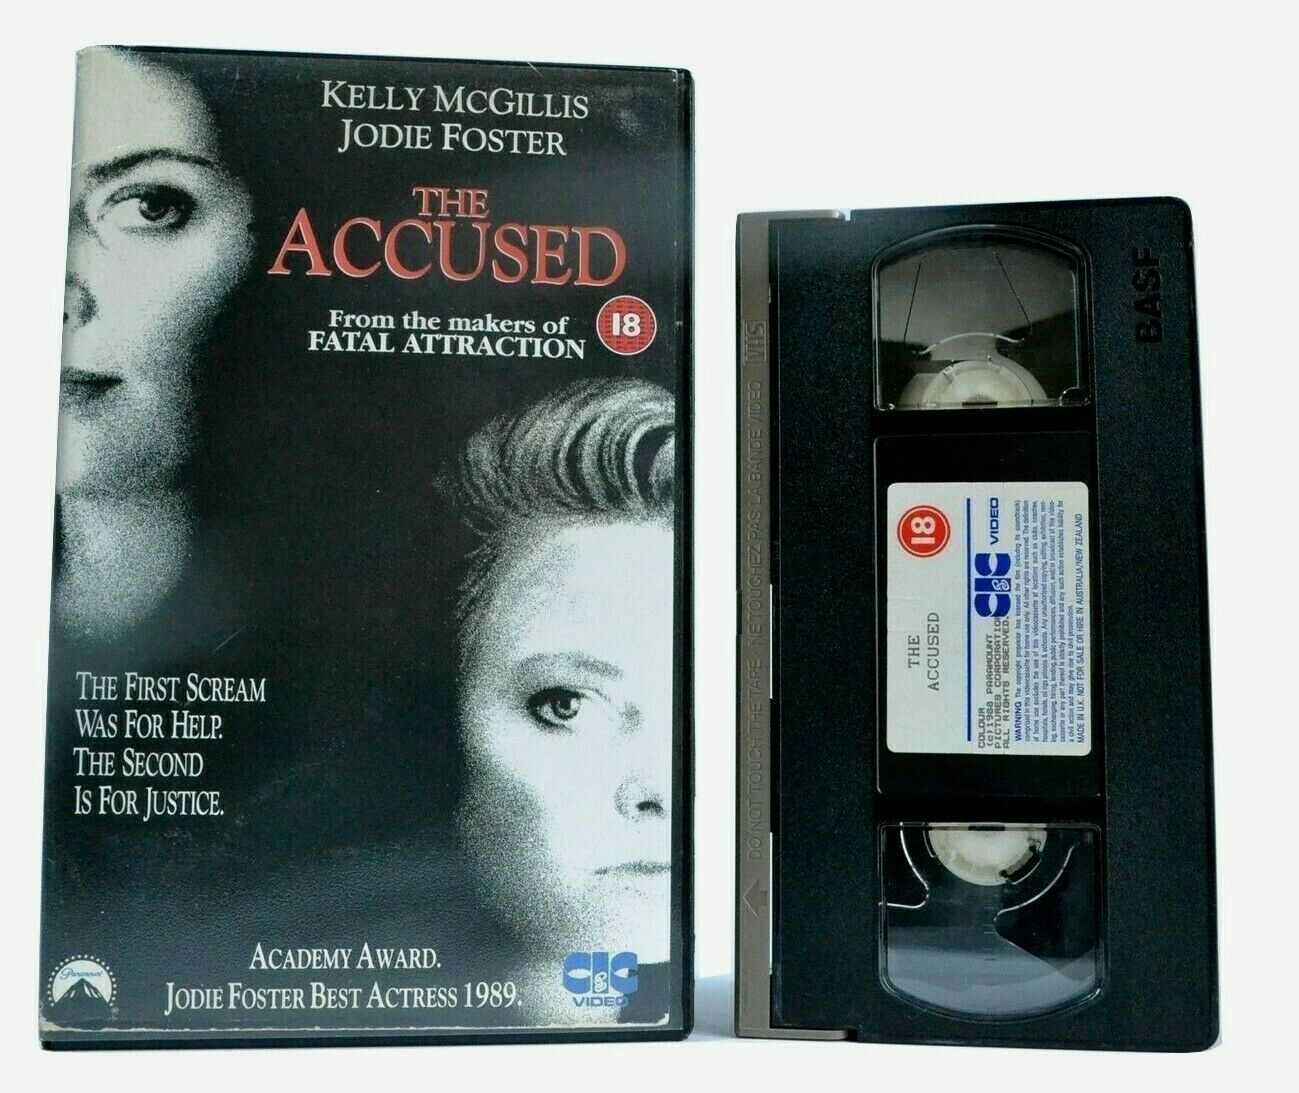 The Accused - Court Thriller - Large Box - Kelly McGillis/Jodie Foster - Pal VHS